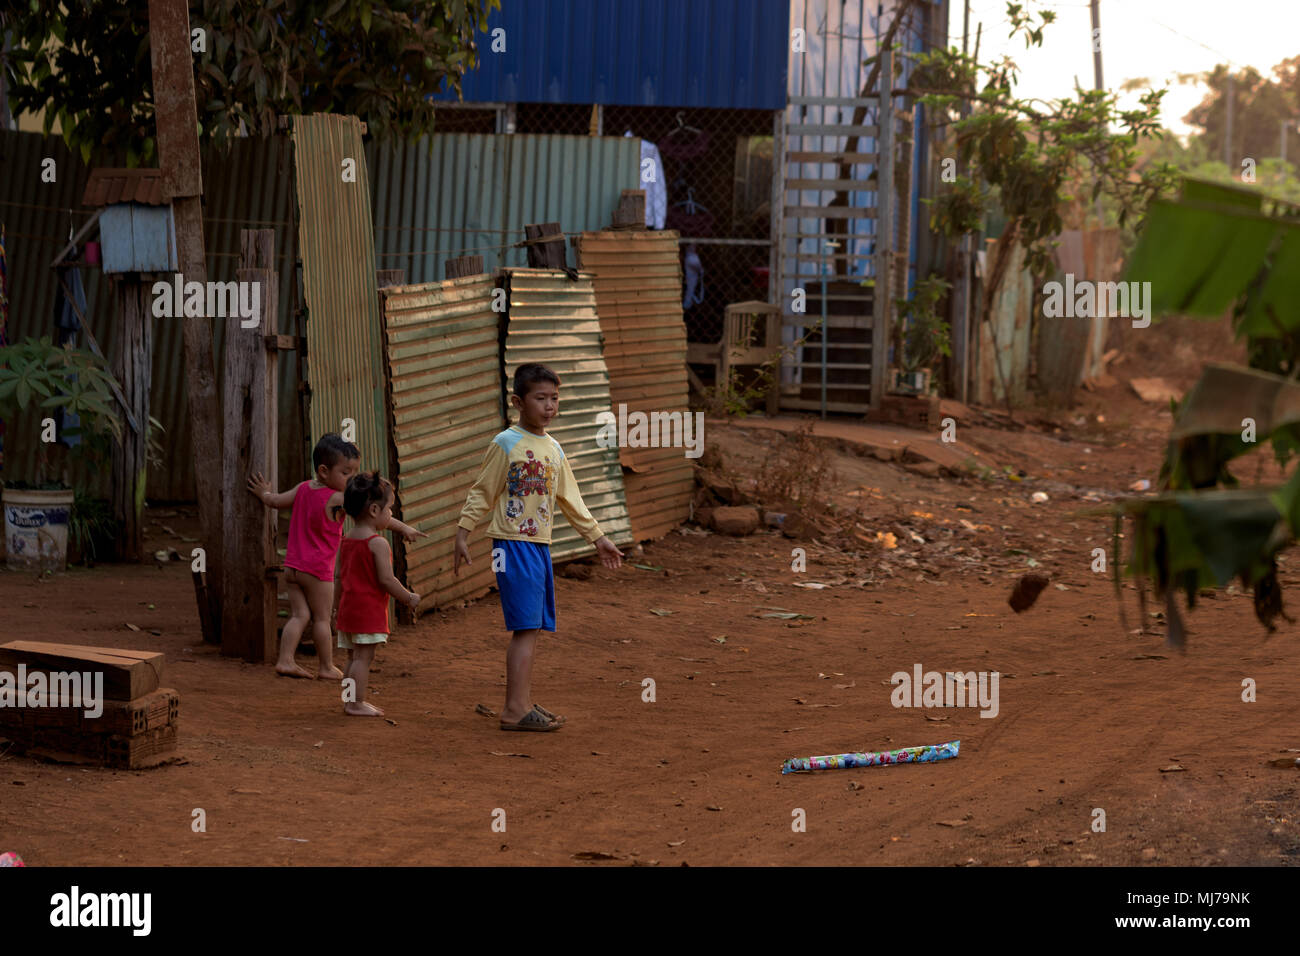 Cambodian small kids playing on the street In Banlung Province, Cambodia 02 march 2018. - Stock Image